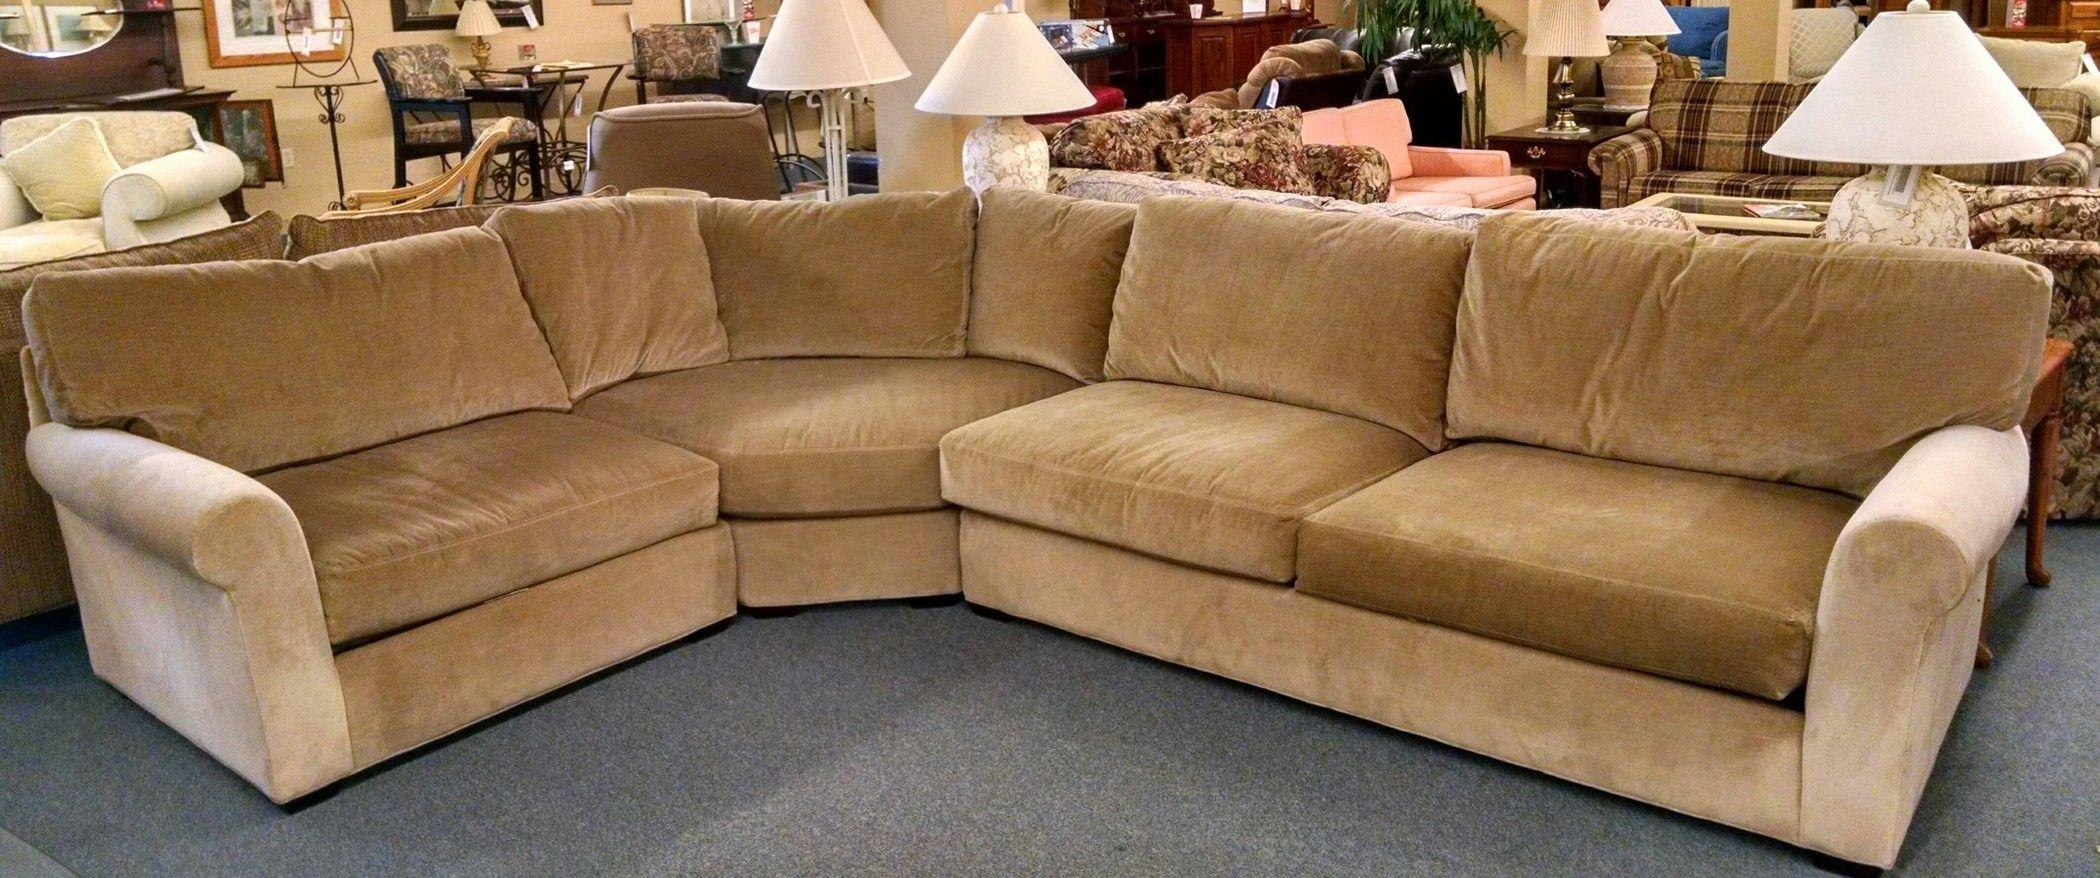 Lee Industries Sectional Sofa | Delmarva Furniture Consignment Throughout Lee Industries Sectional (View 5 of 20)